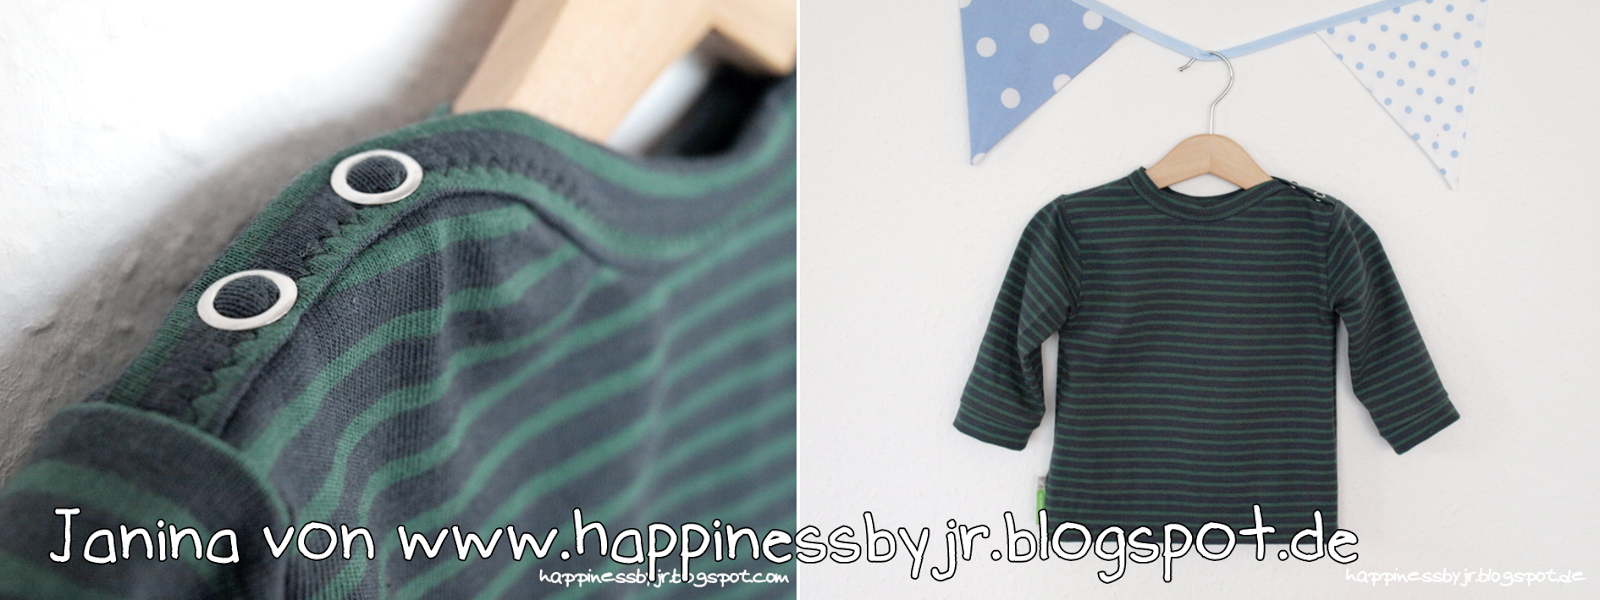 http://happinessbyjr.blogspot.de/